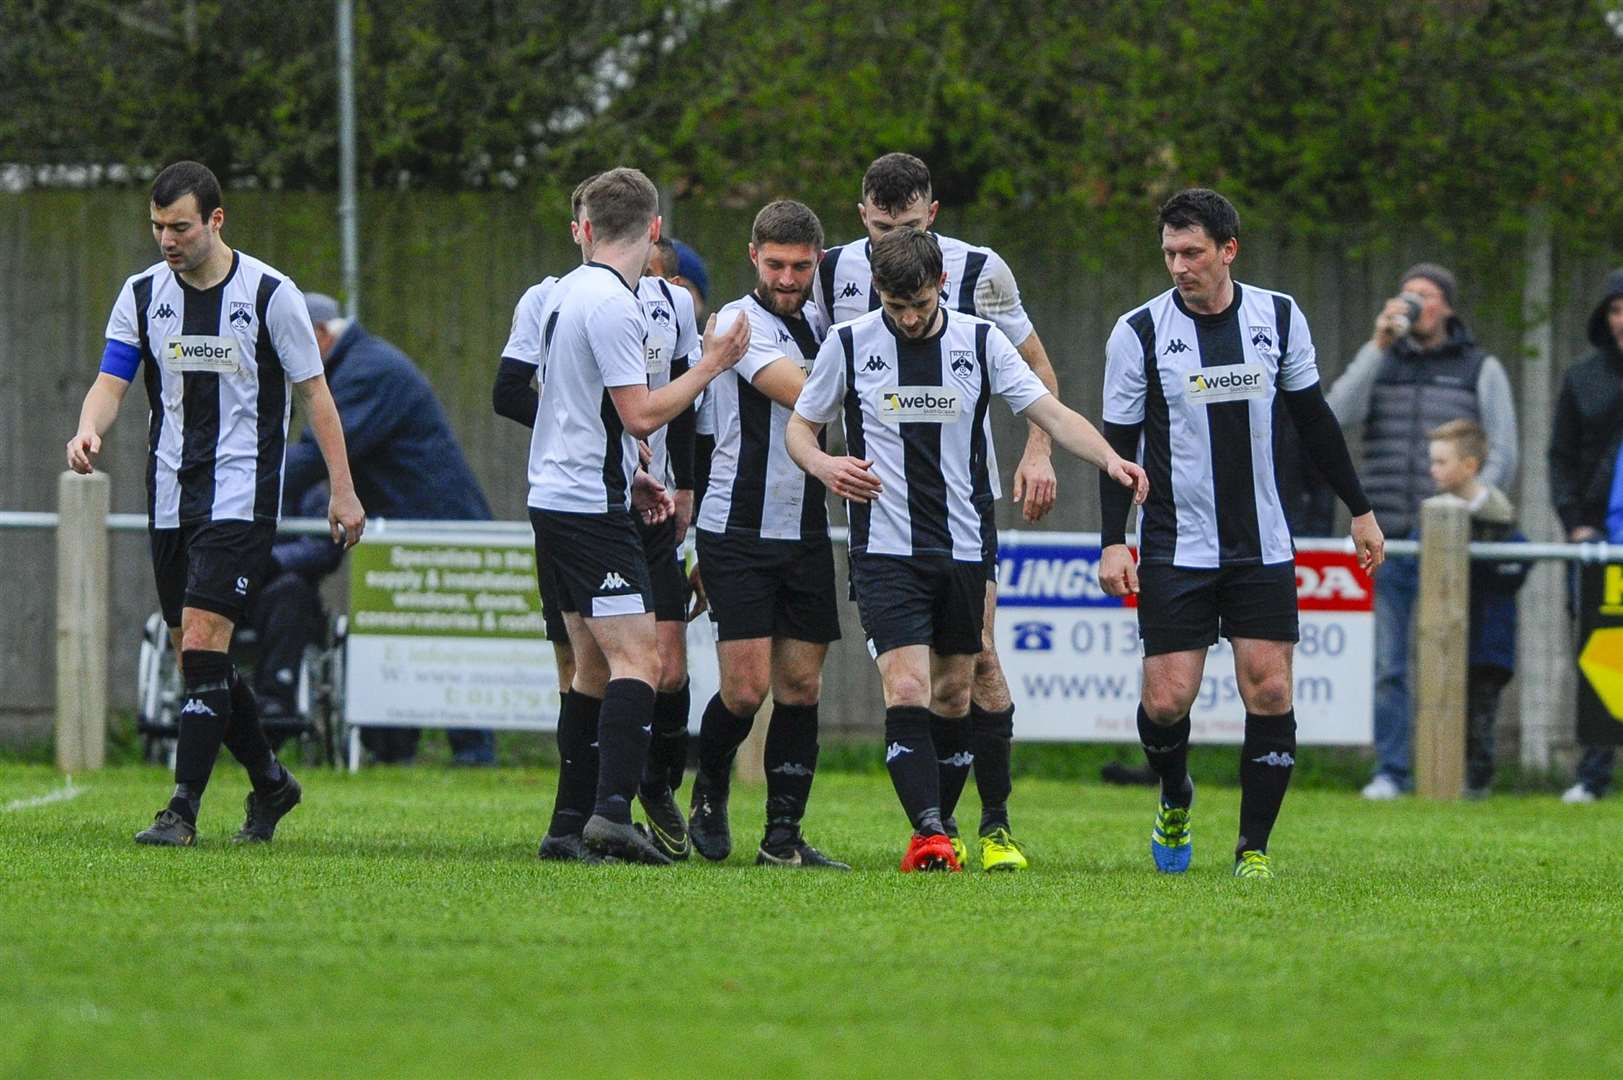 Football action from Harleston Town vs Diss Town FC - Harleston celebrate a goal..Picture: Mark Bullimore Photography. (11521802)